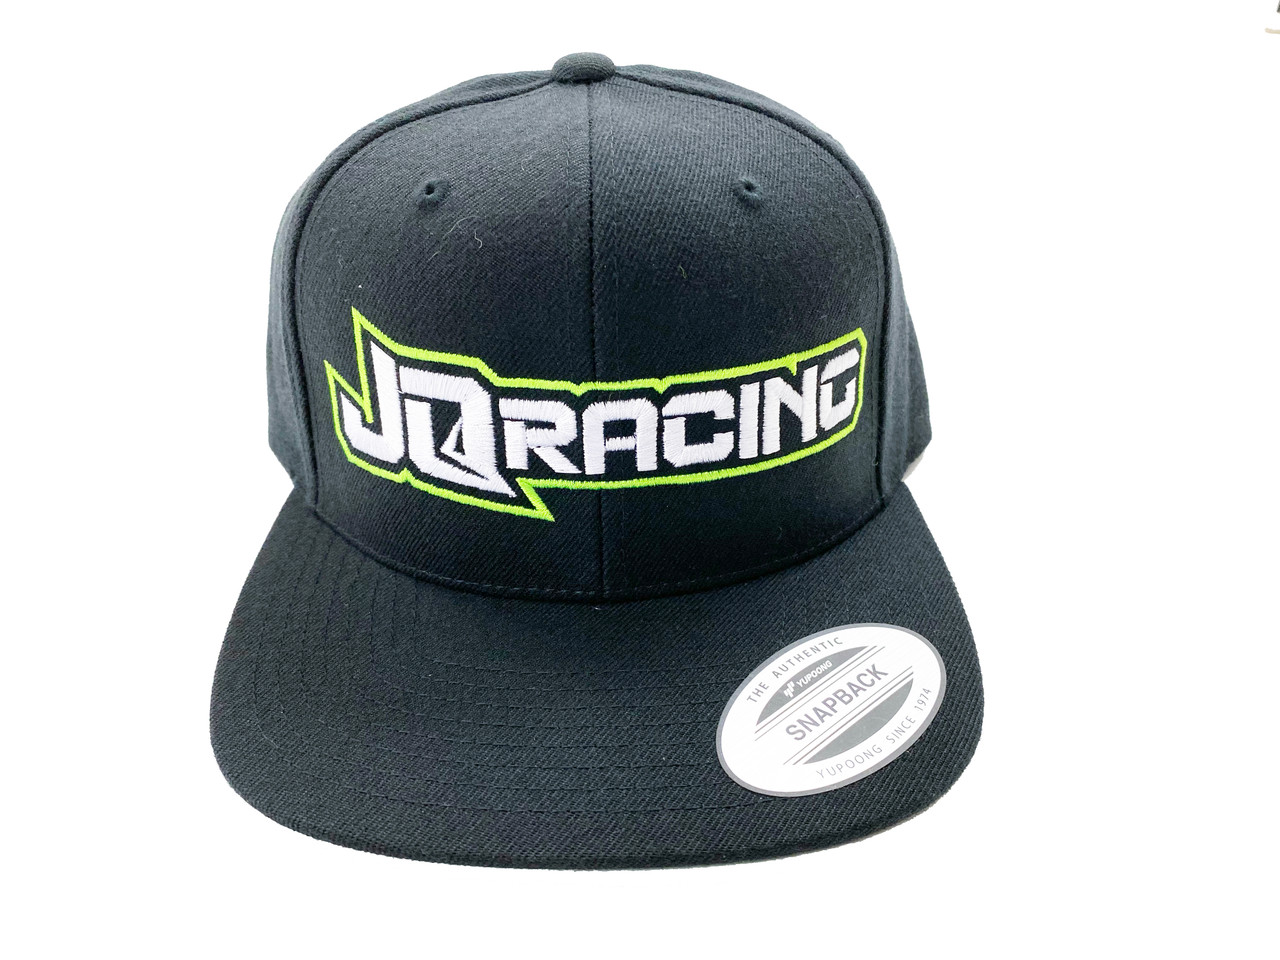 JQ Racing 2020 Flexfit Tech Snap Back hat (Black)